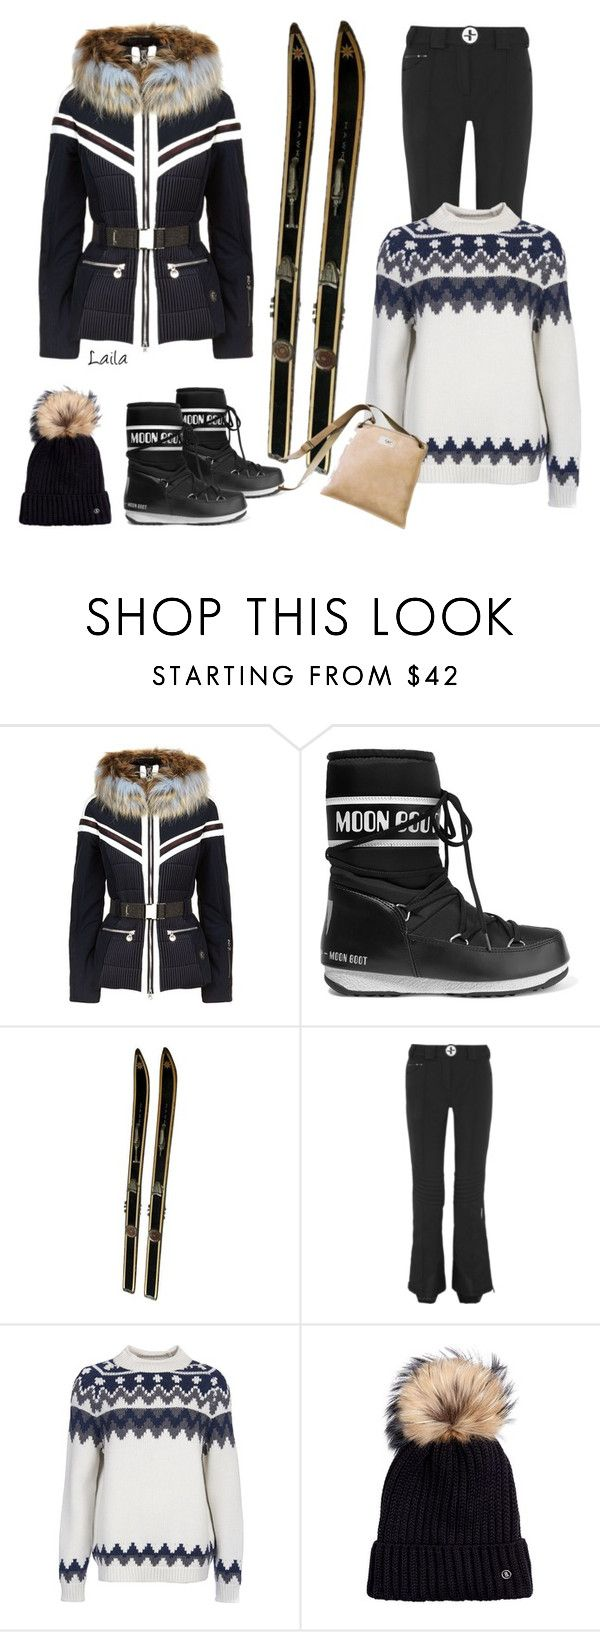 """""""Winter Weather"""" by laila-bergan ❤ liked on Polyvore featuring Sportalm, Moon Boot, Christian Lacroix, Barbour, Bogner and UGG Australia"""